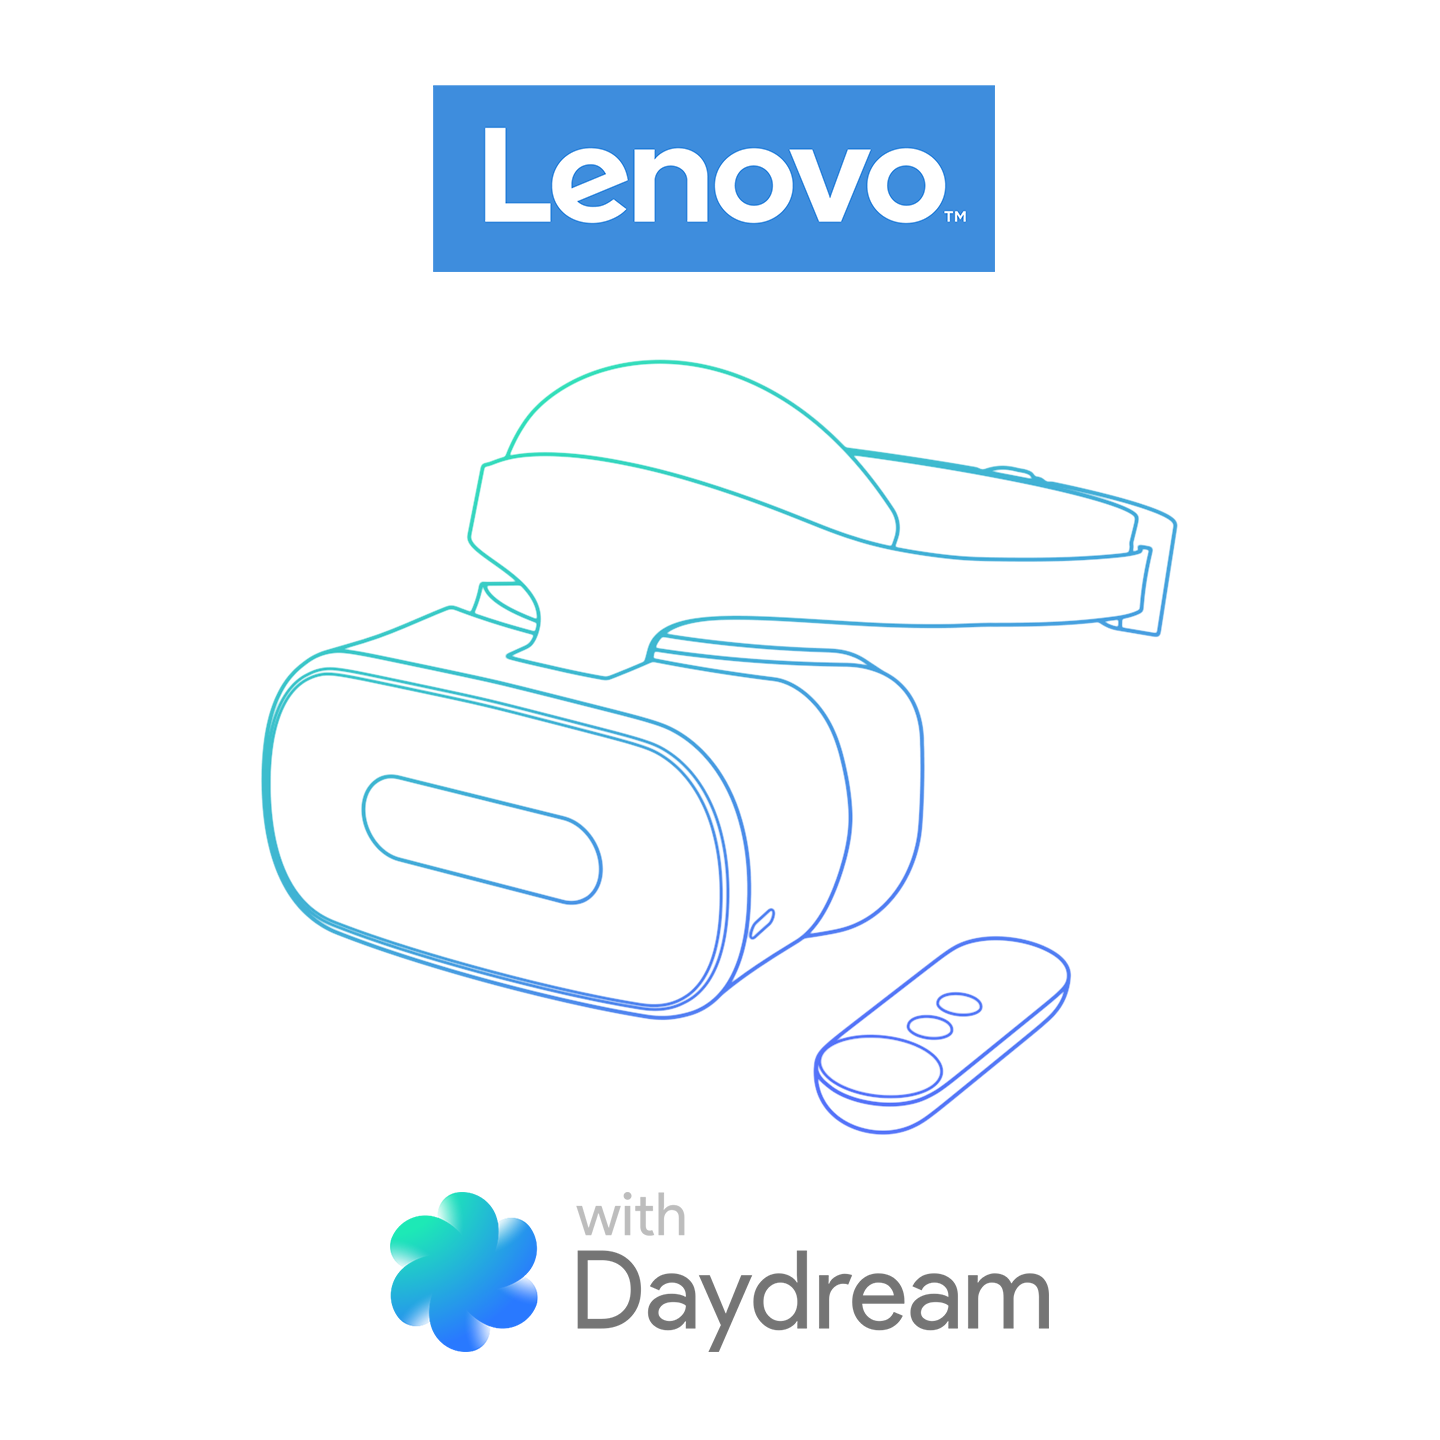 Lenovo Standalone with Daydream